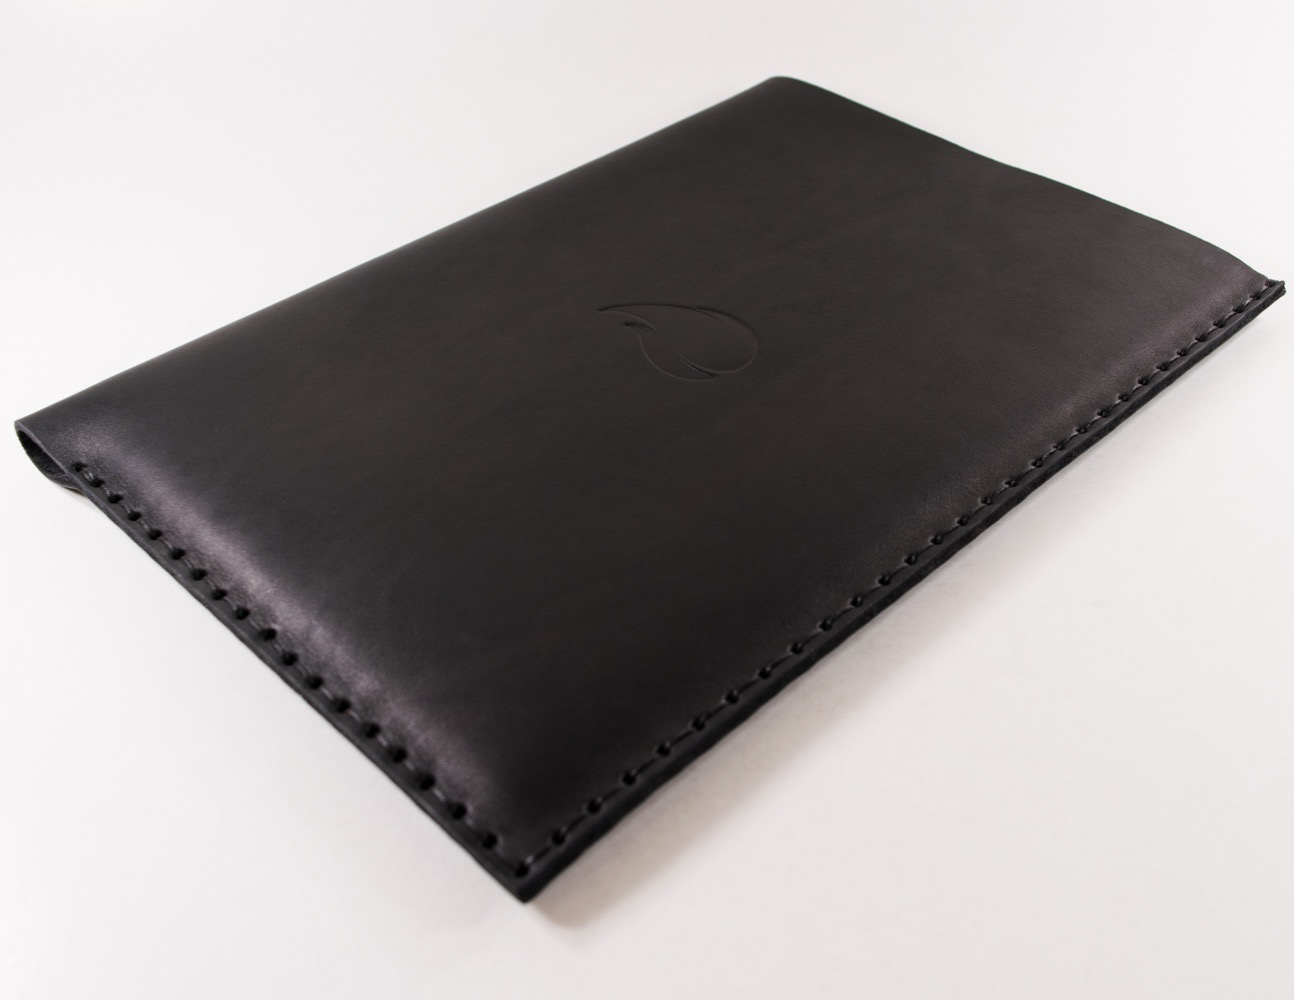 12-inch-macbook-black-thick-natural-leather-sleeve-case-straight-cut-by-firecult-1300-x-1000-3